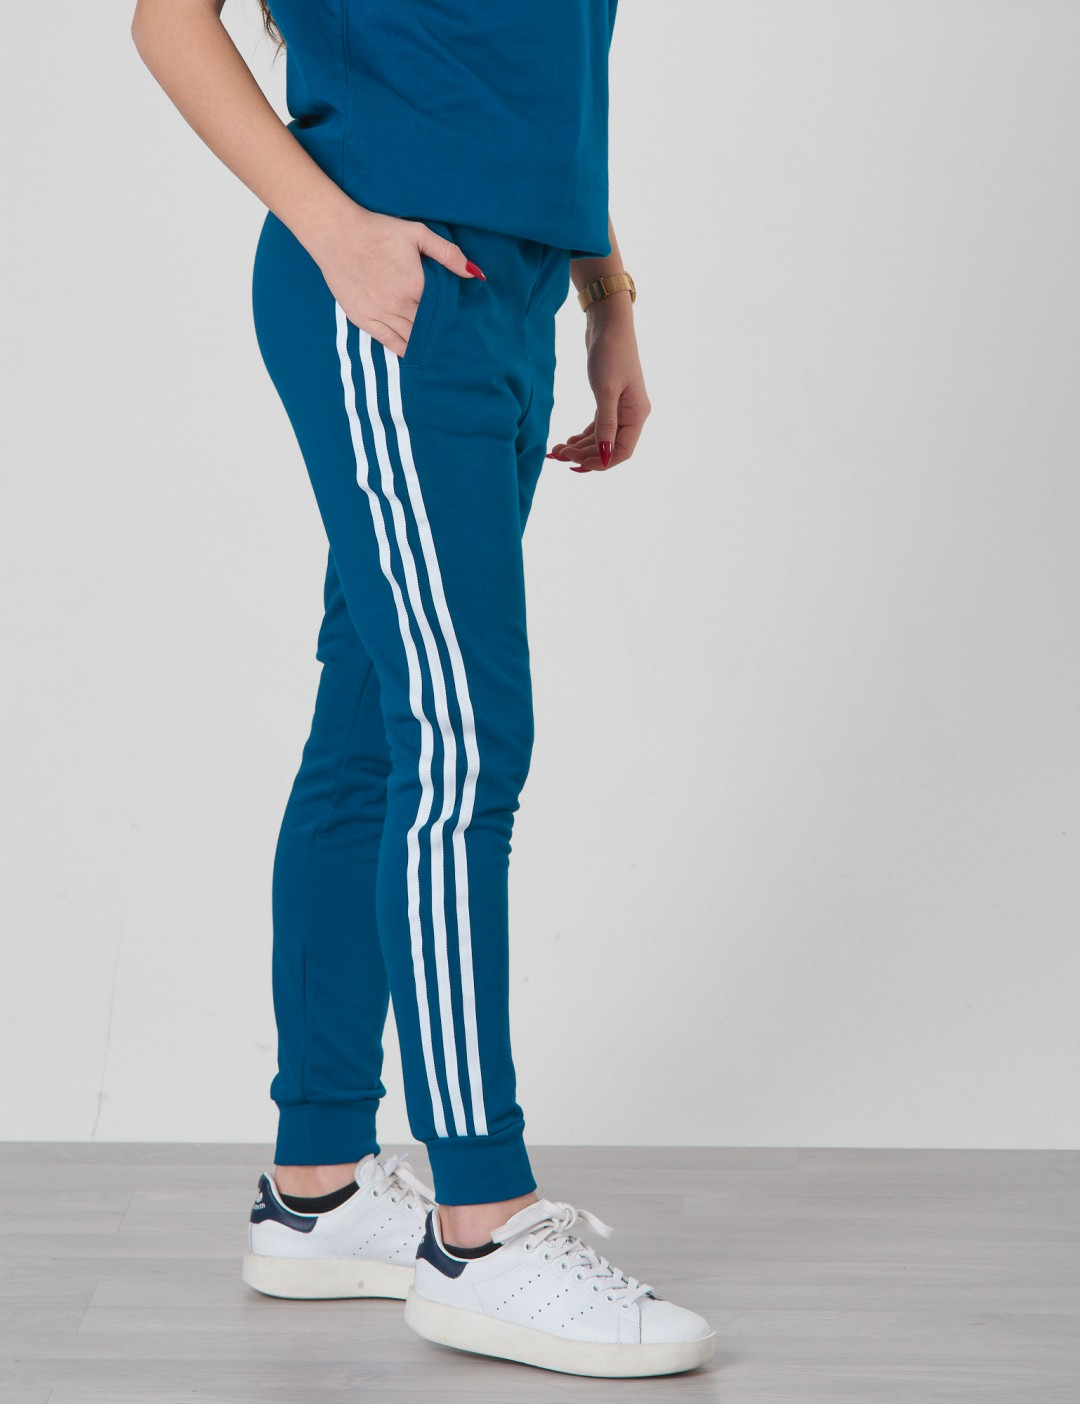 the latest 783da f6882 ... Adidas Originals - TREFOIL PANTS ...